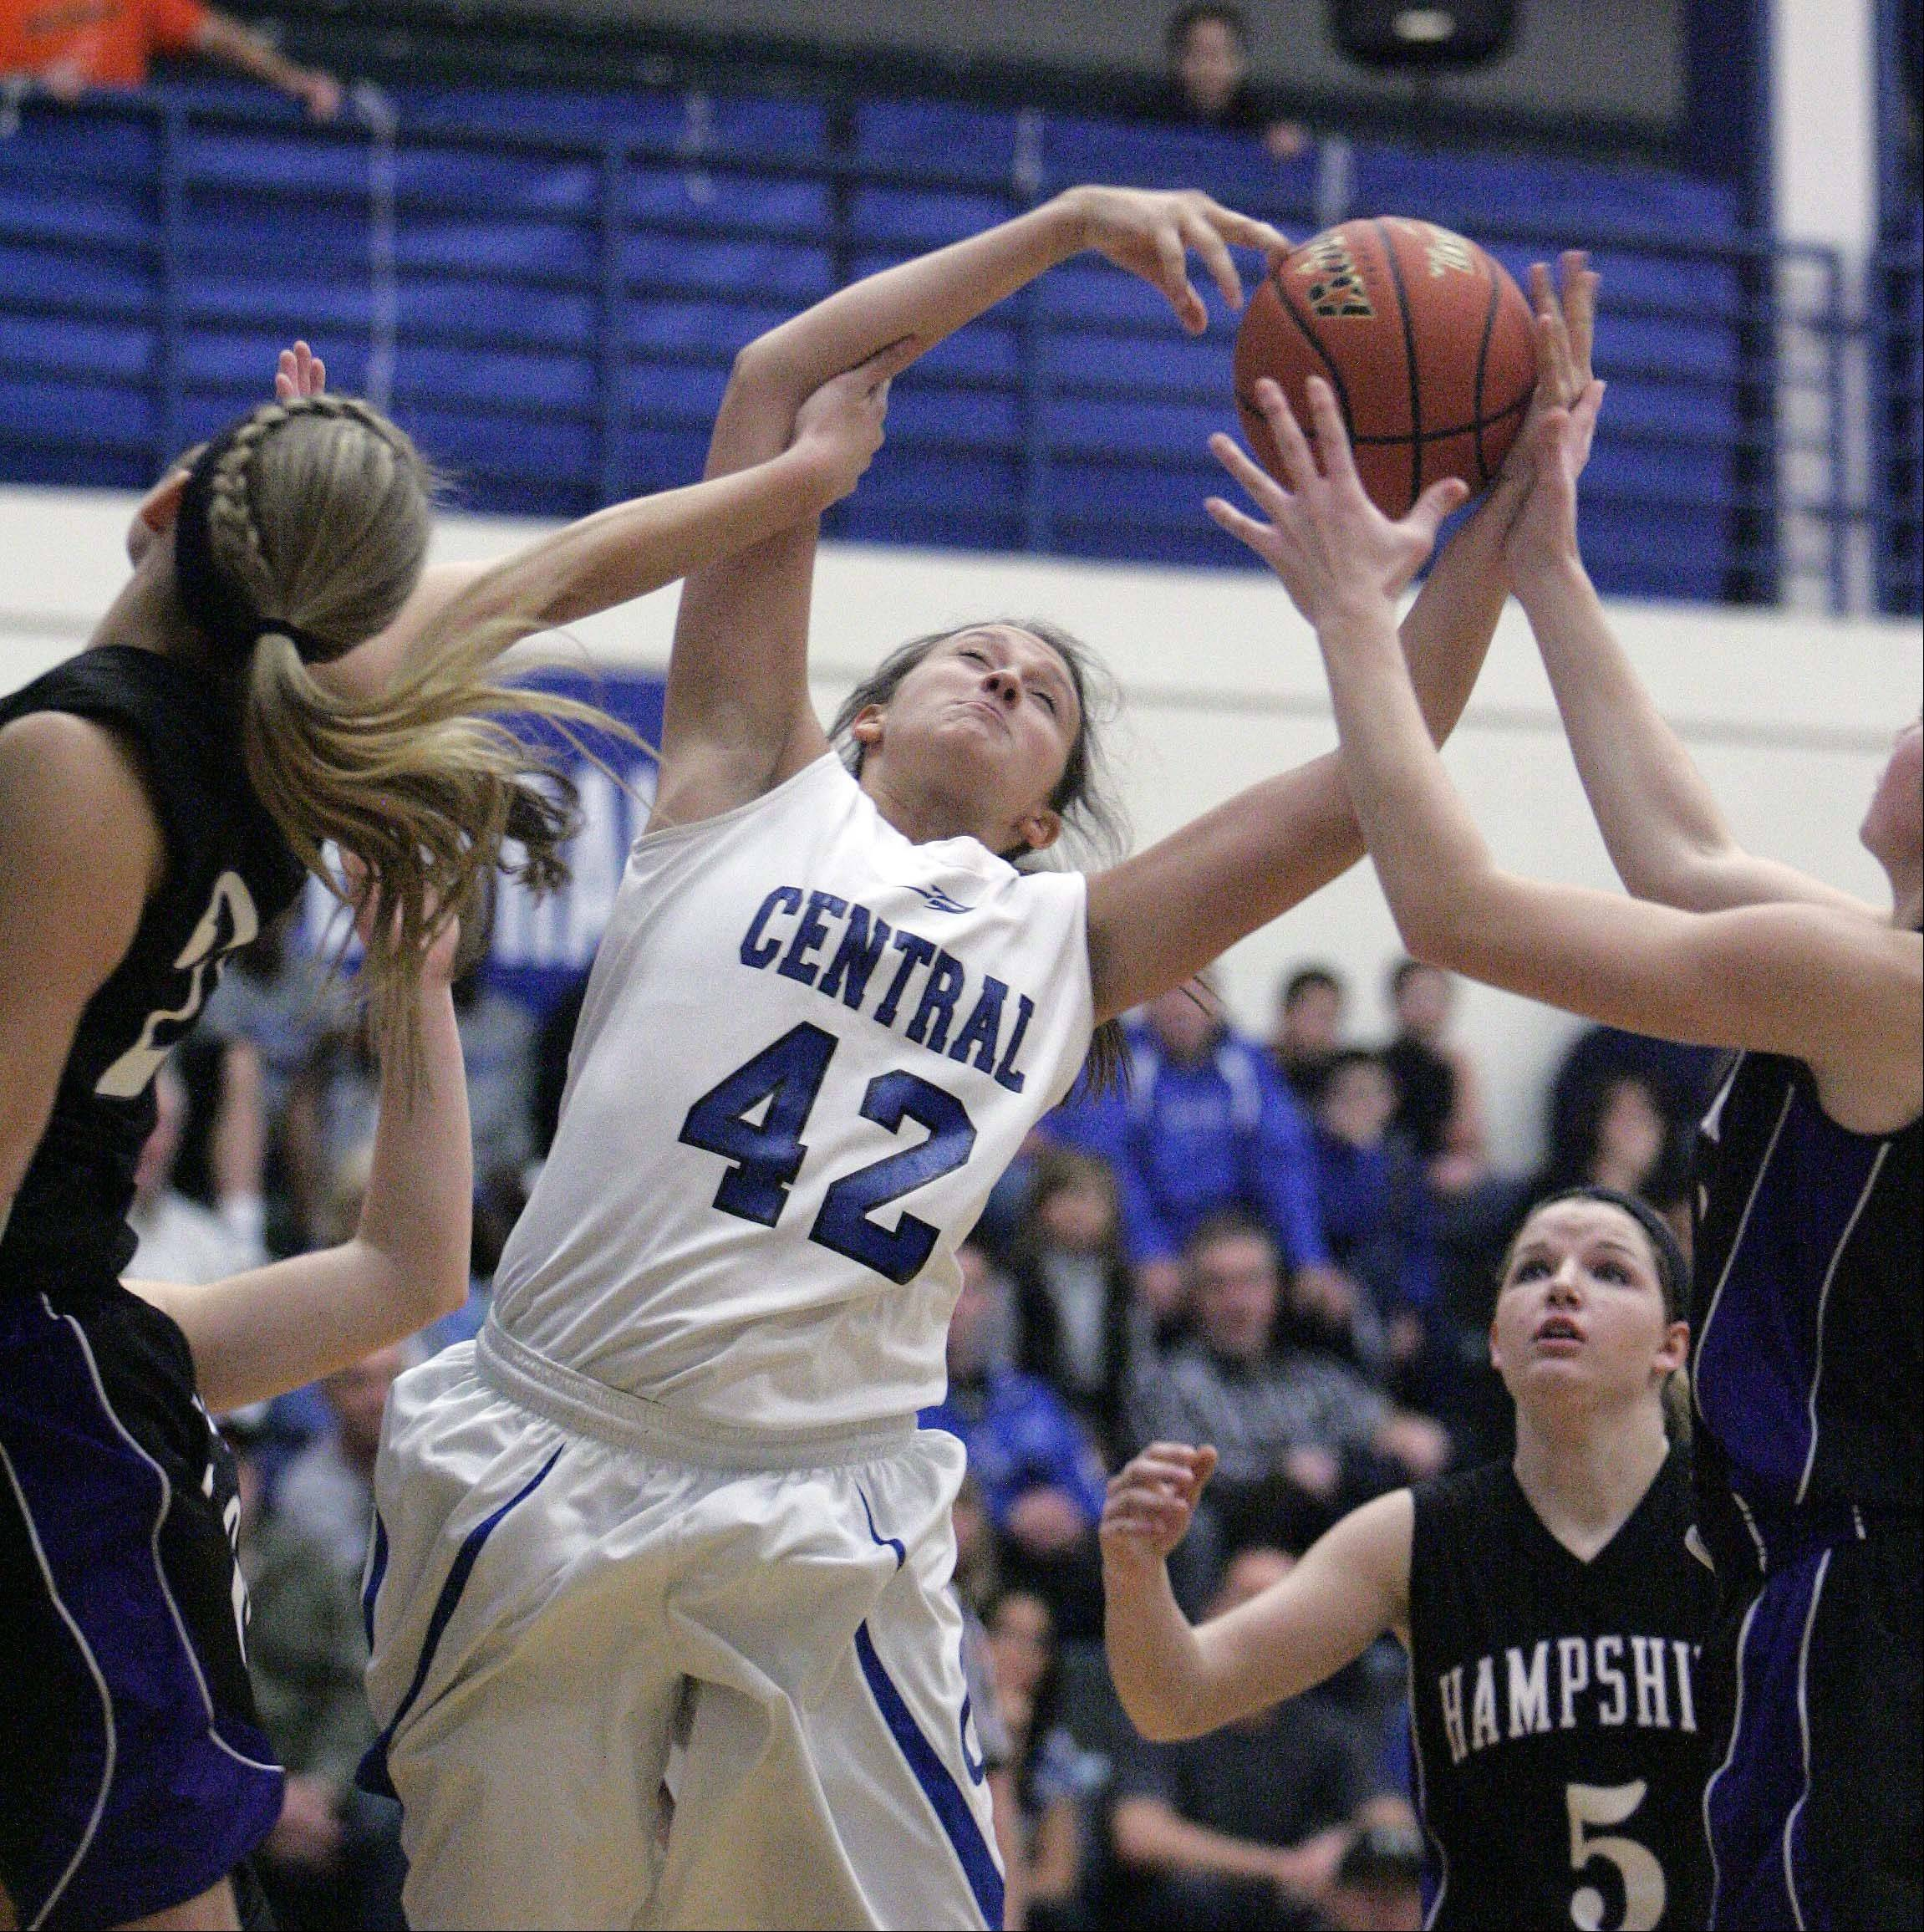 Burlington Central's Alison Colby (42) rips down anothe rebound during Hampshire at Burlington Central girls basketball Saturday December 8, 2012.